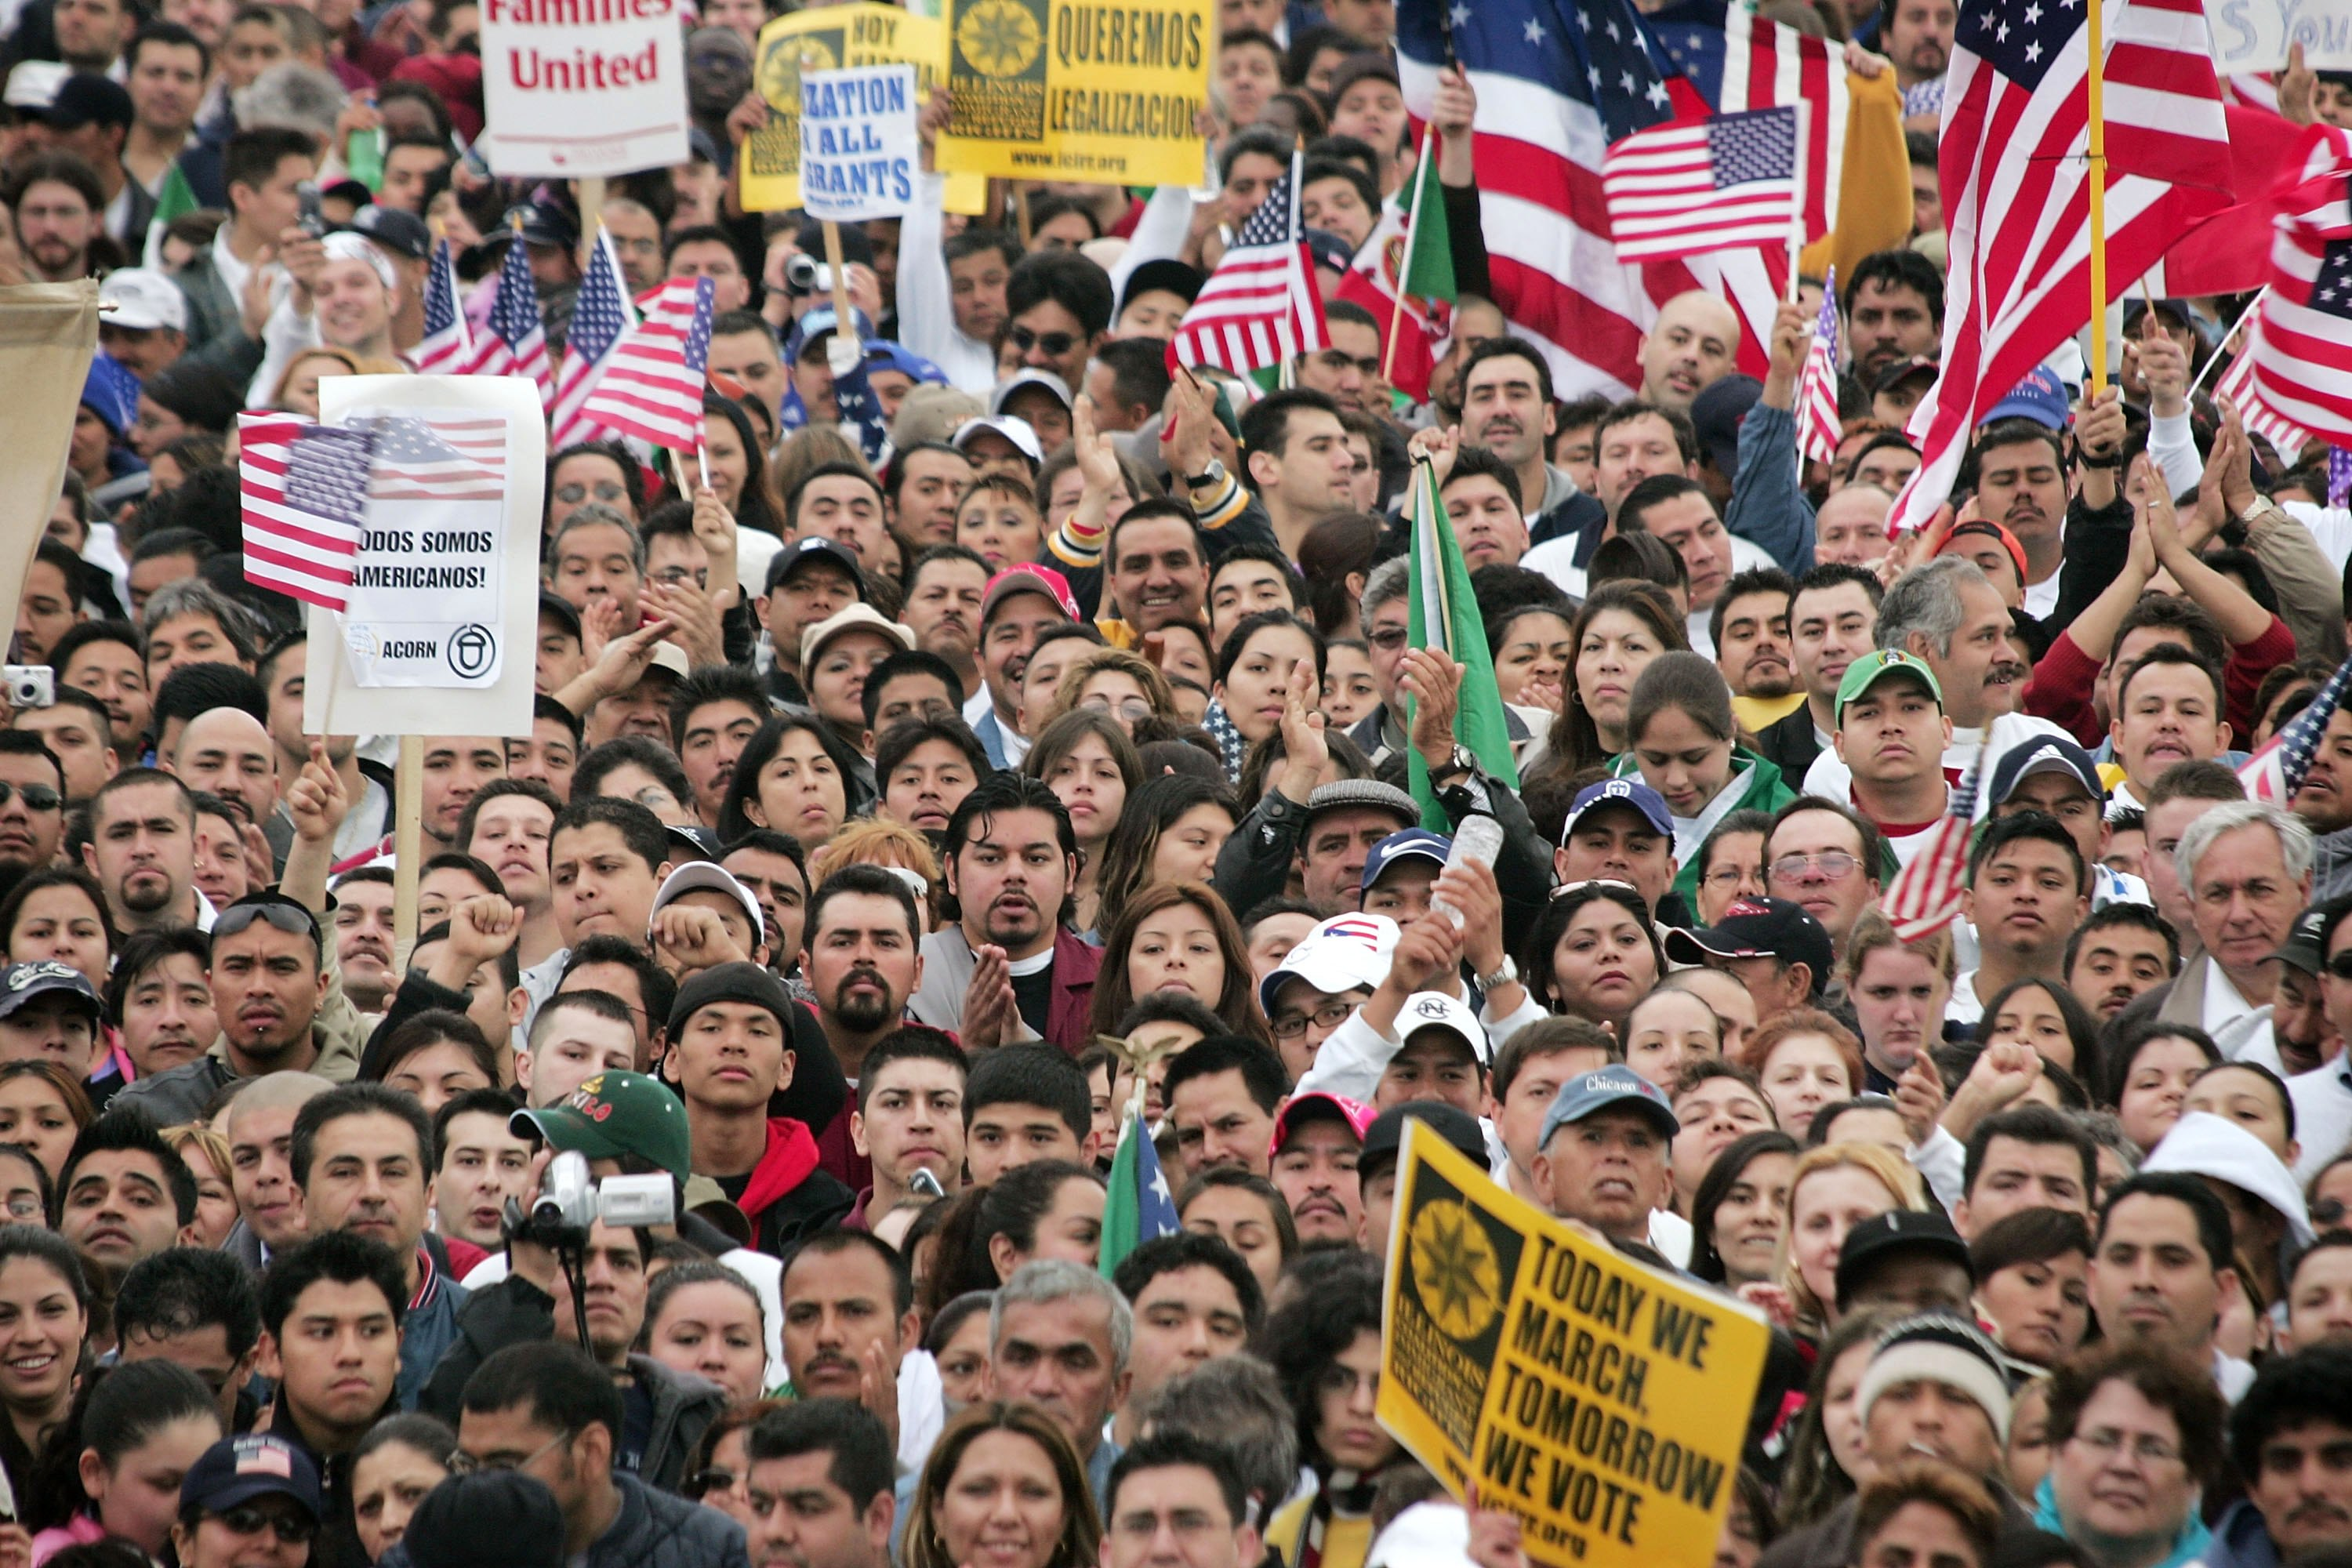 Immigrant rights supporters rally in Grant Park following a march through downtown May 1, 2006 in Chicago. Immigrants and their supporters around the nation are rallying together through marches and demonstrations, along with boycotting work and spending, in a consolidated effort to show their importance throughout American society as the ongoing political debate on immigration reform continues.